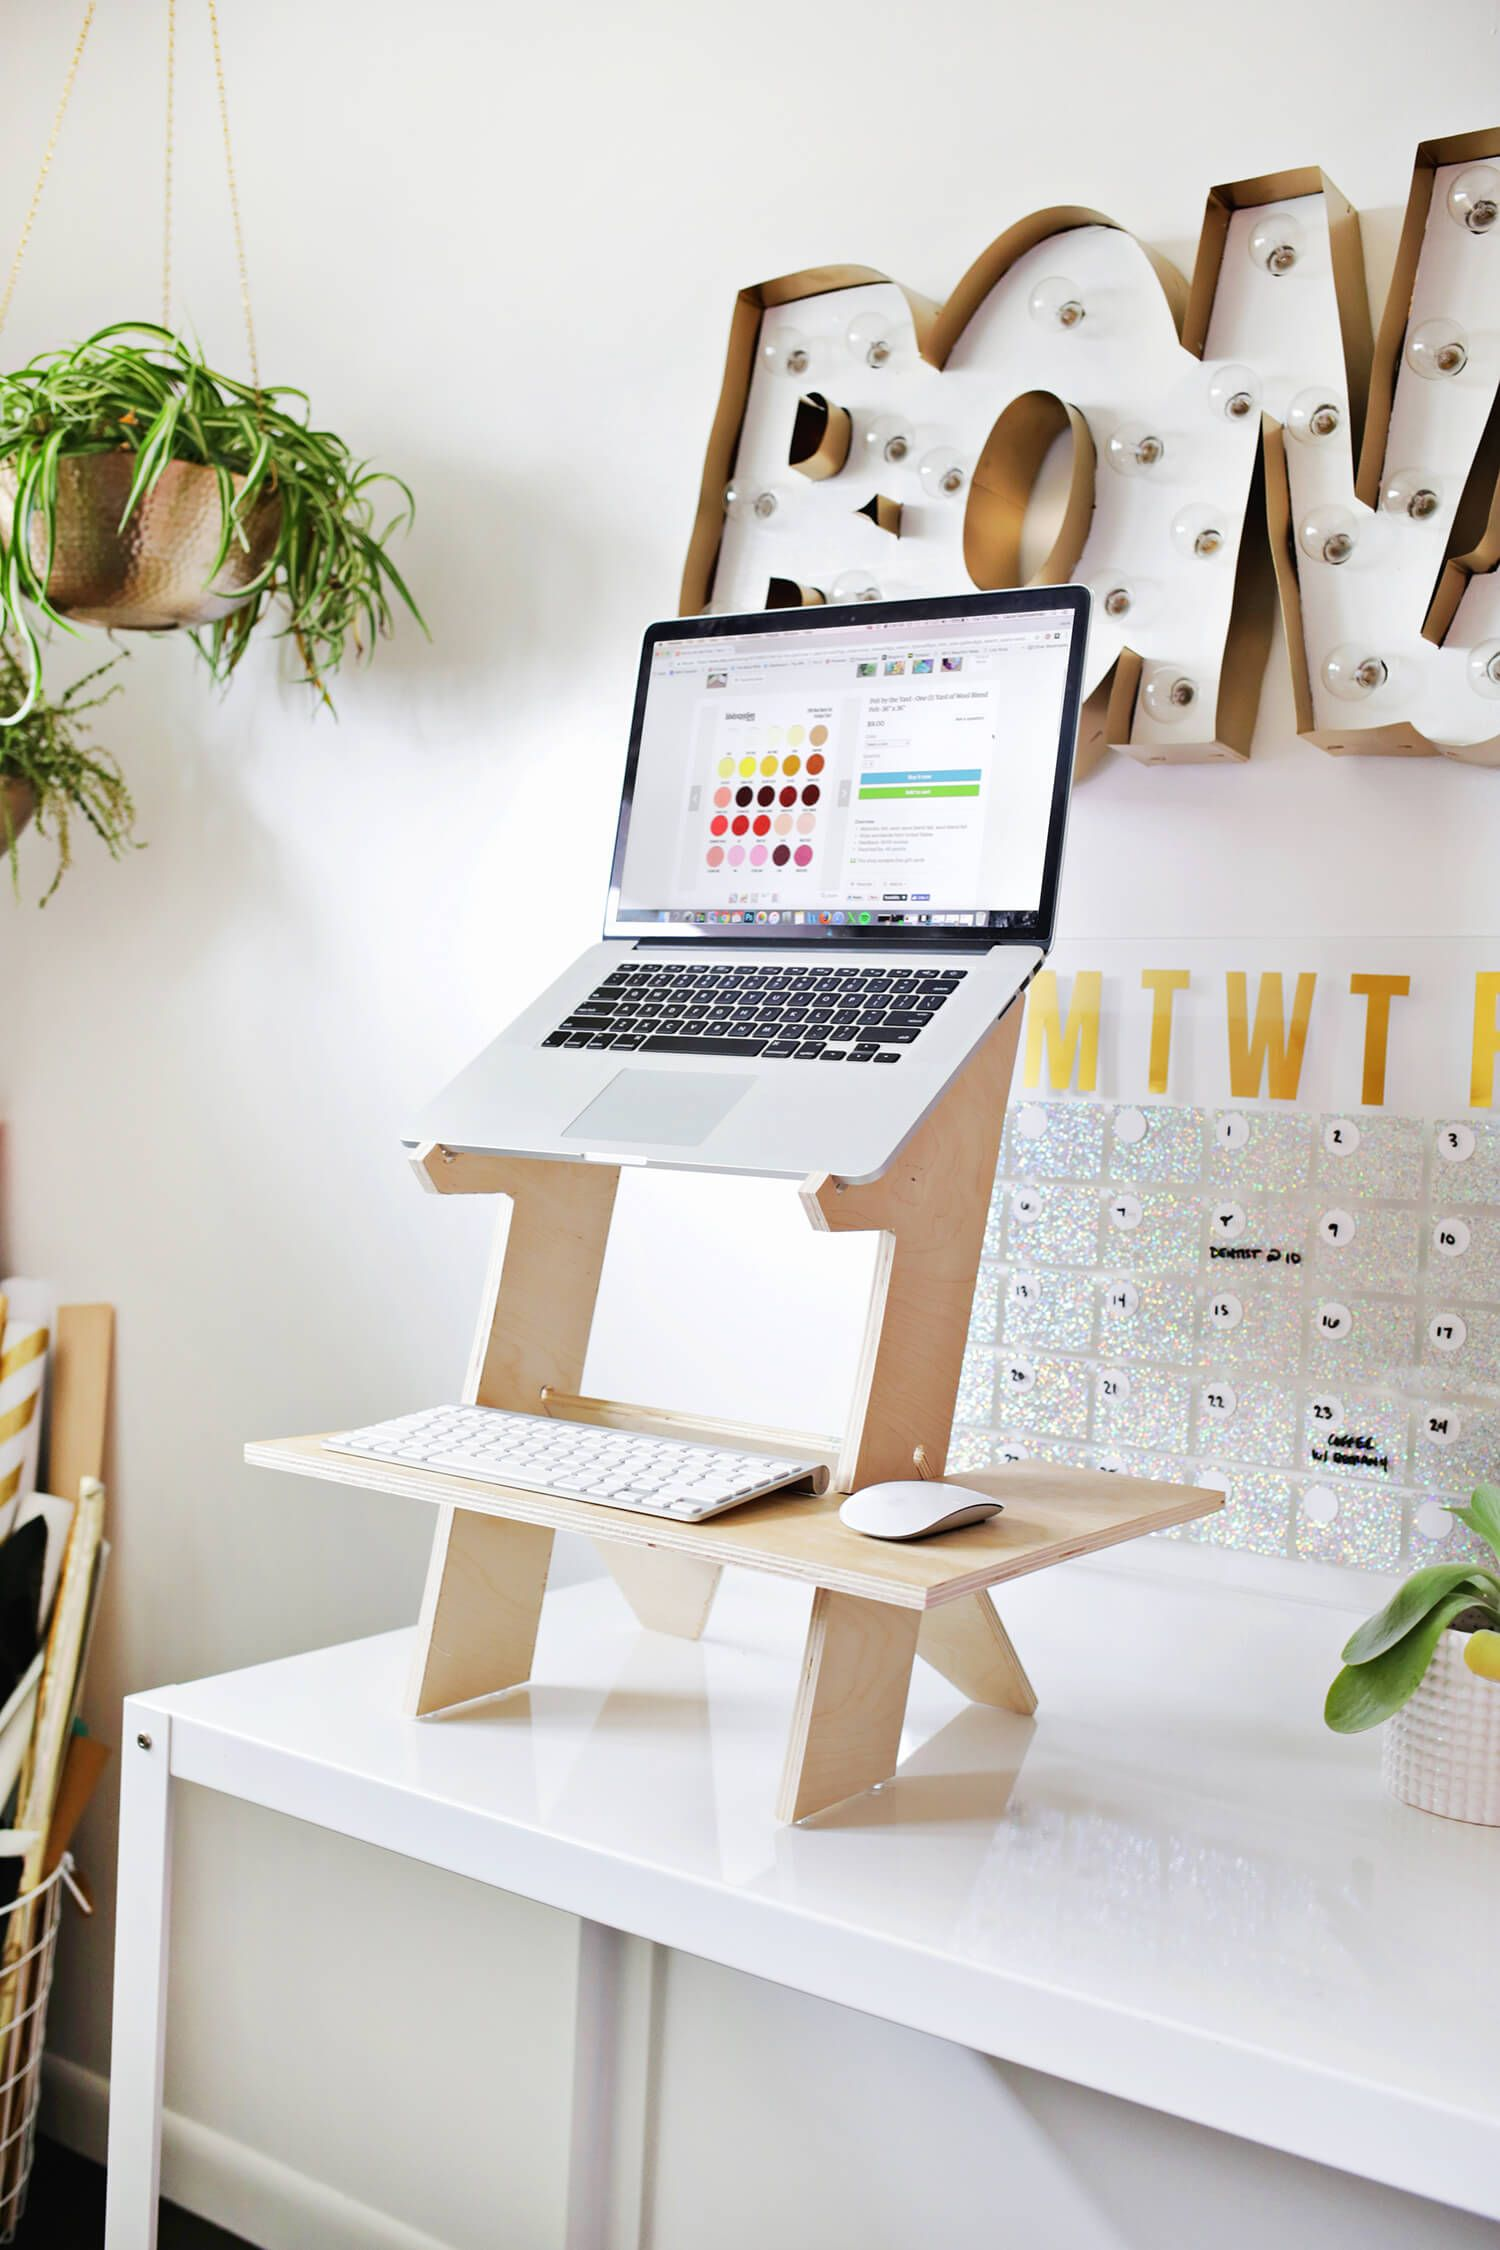 Tabletop Standing Desk Diy A Beautiful Mess Diy Around The